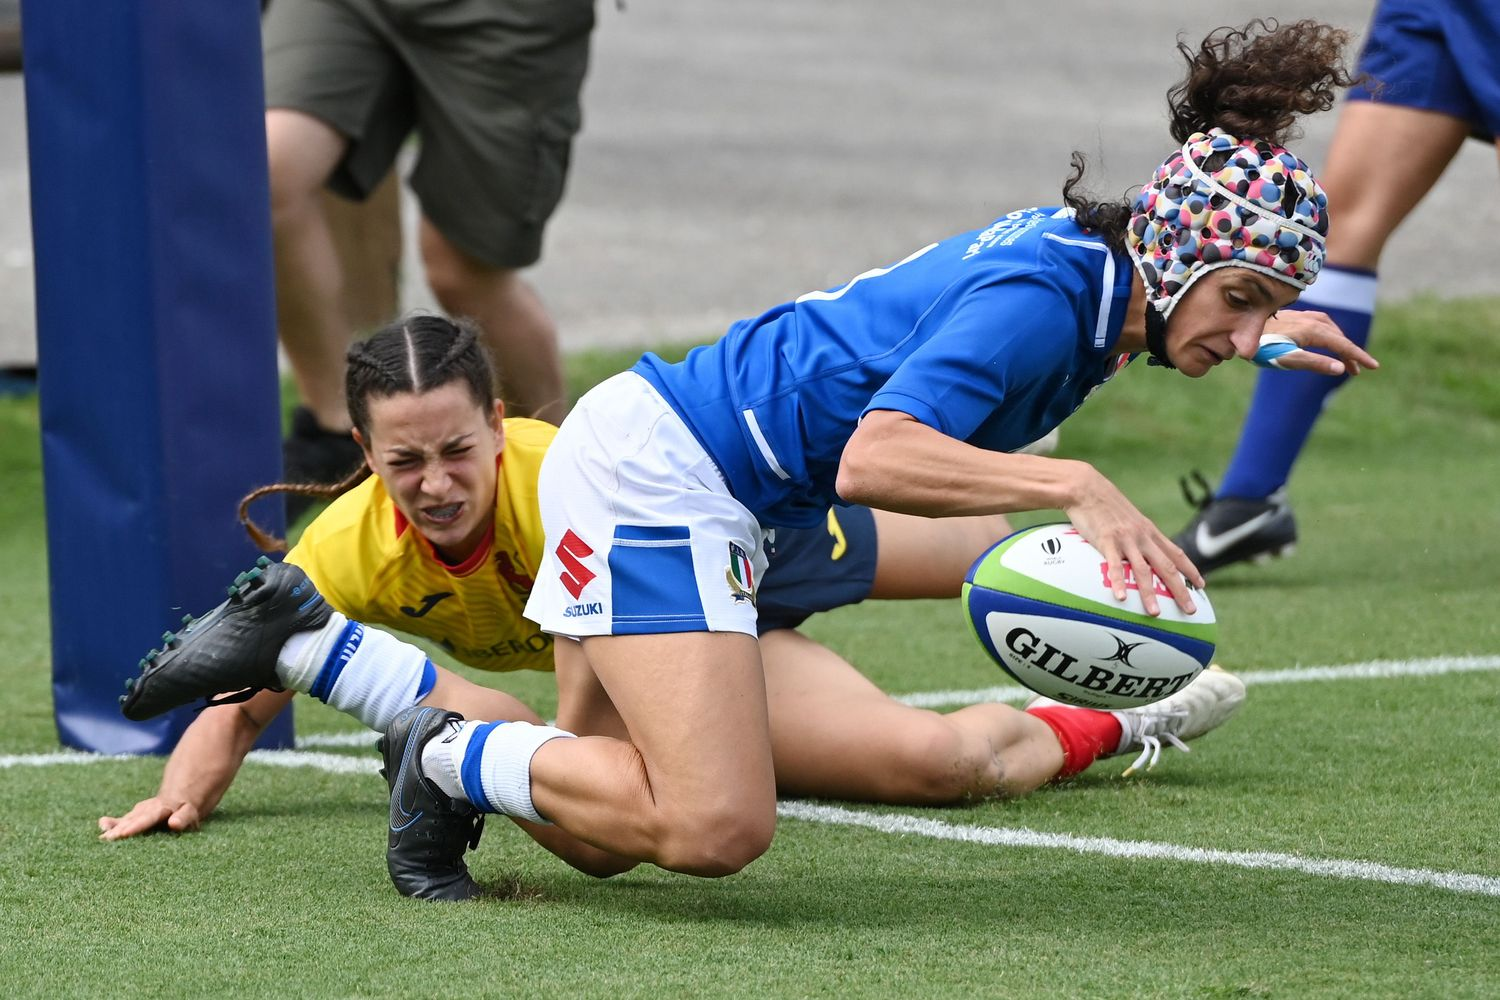 Rugby World Cup 2021 Europe Qualifier: Italy v Spain